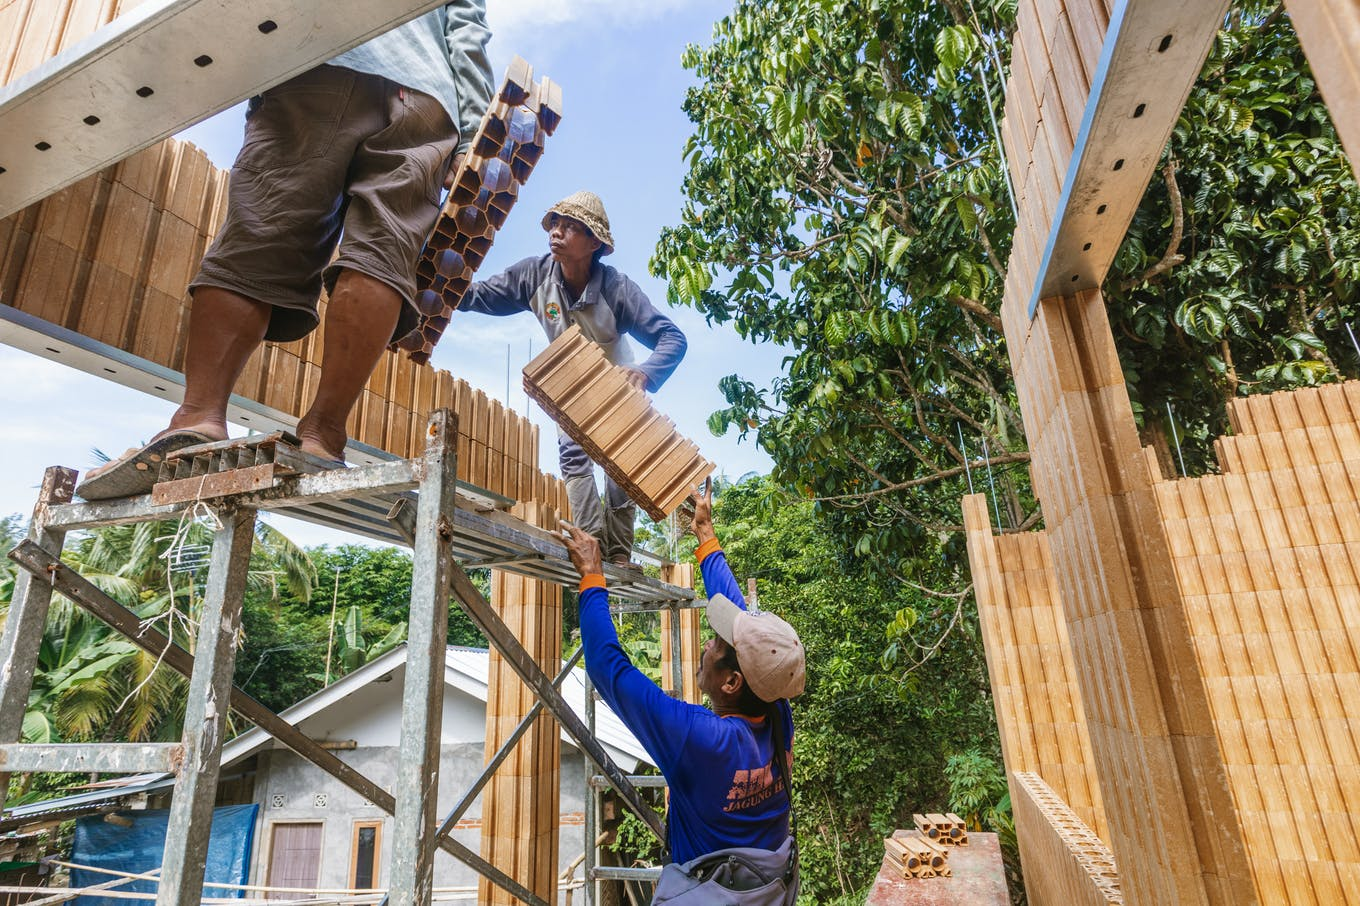 Construction of the Eco-Block school in Lombok. Image: Eszter Papp and Fraser Morton